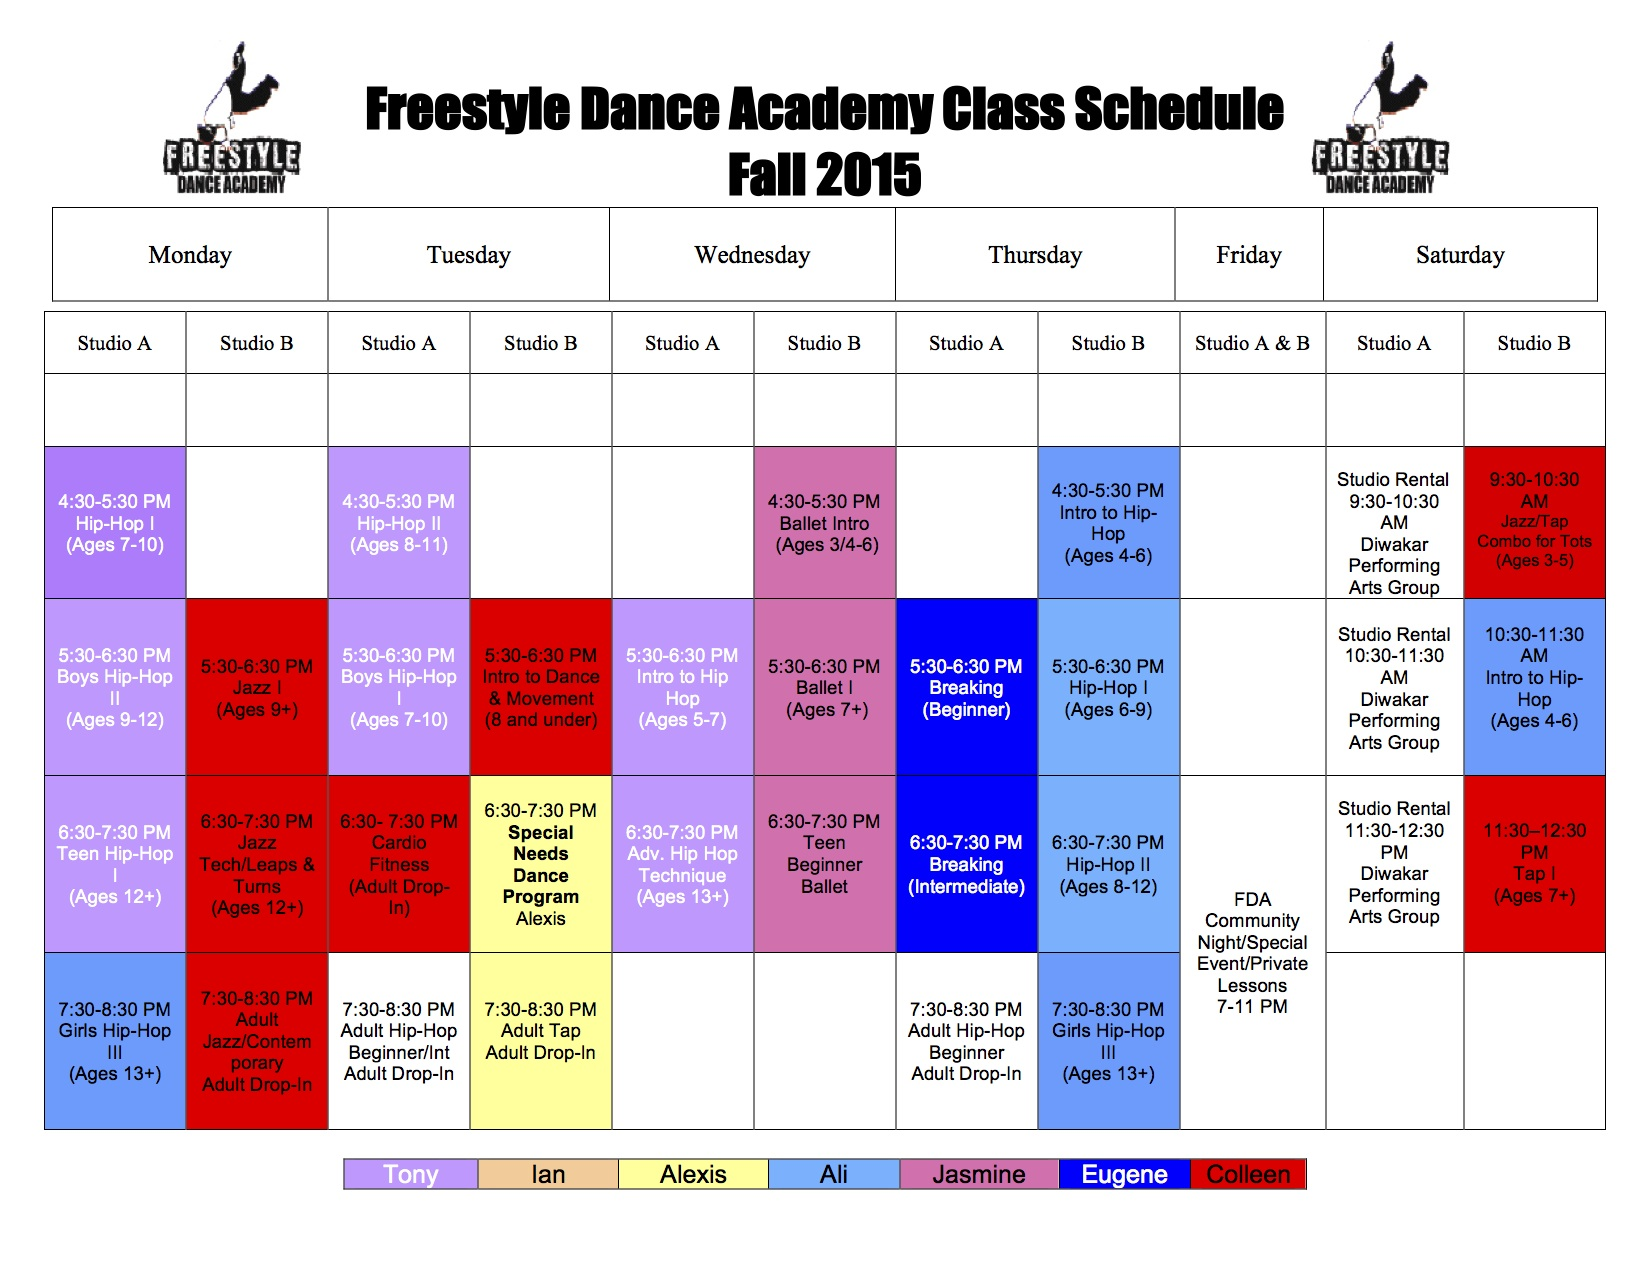 Fall 2015 Dance Class Schedule for Freestyle Dance Academy.